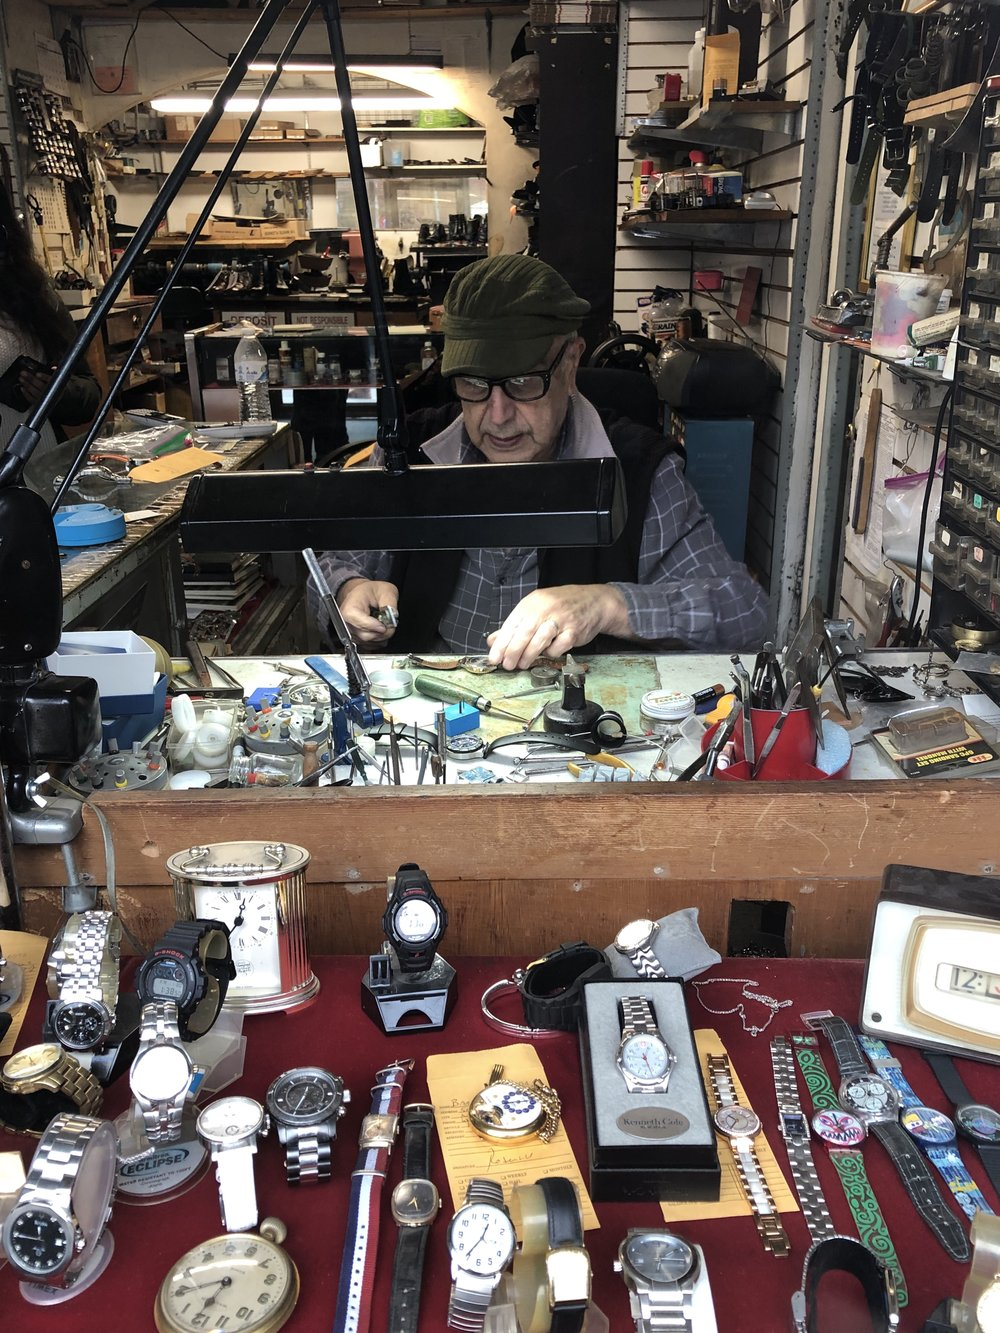 David's Shoe and Watch Repair is a memento of the West Village of the past.  Photo Credit: Auritri Hossain